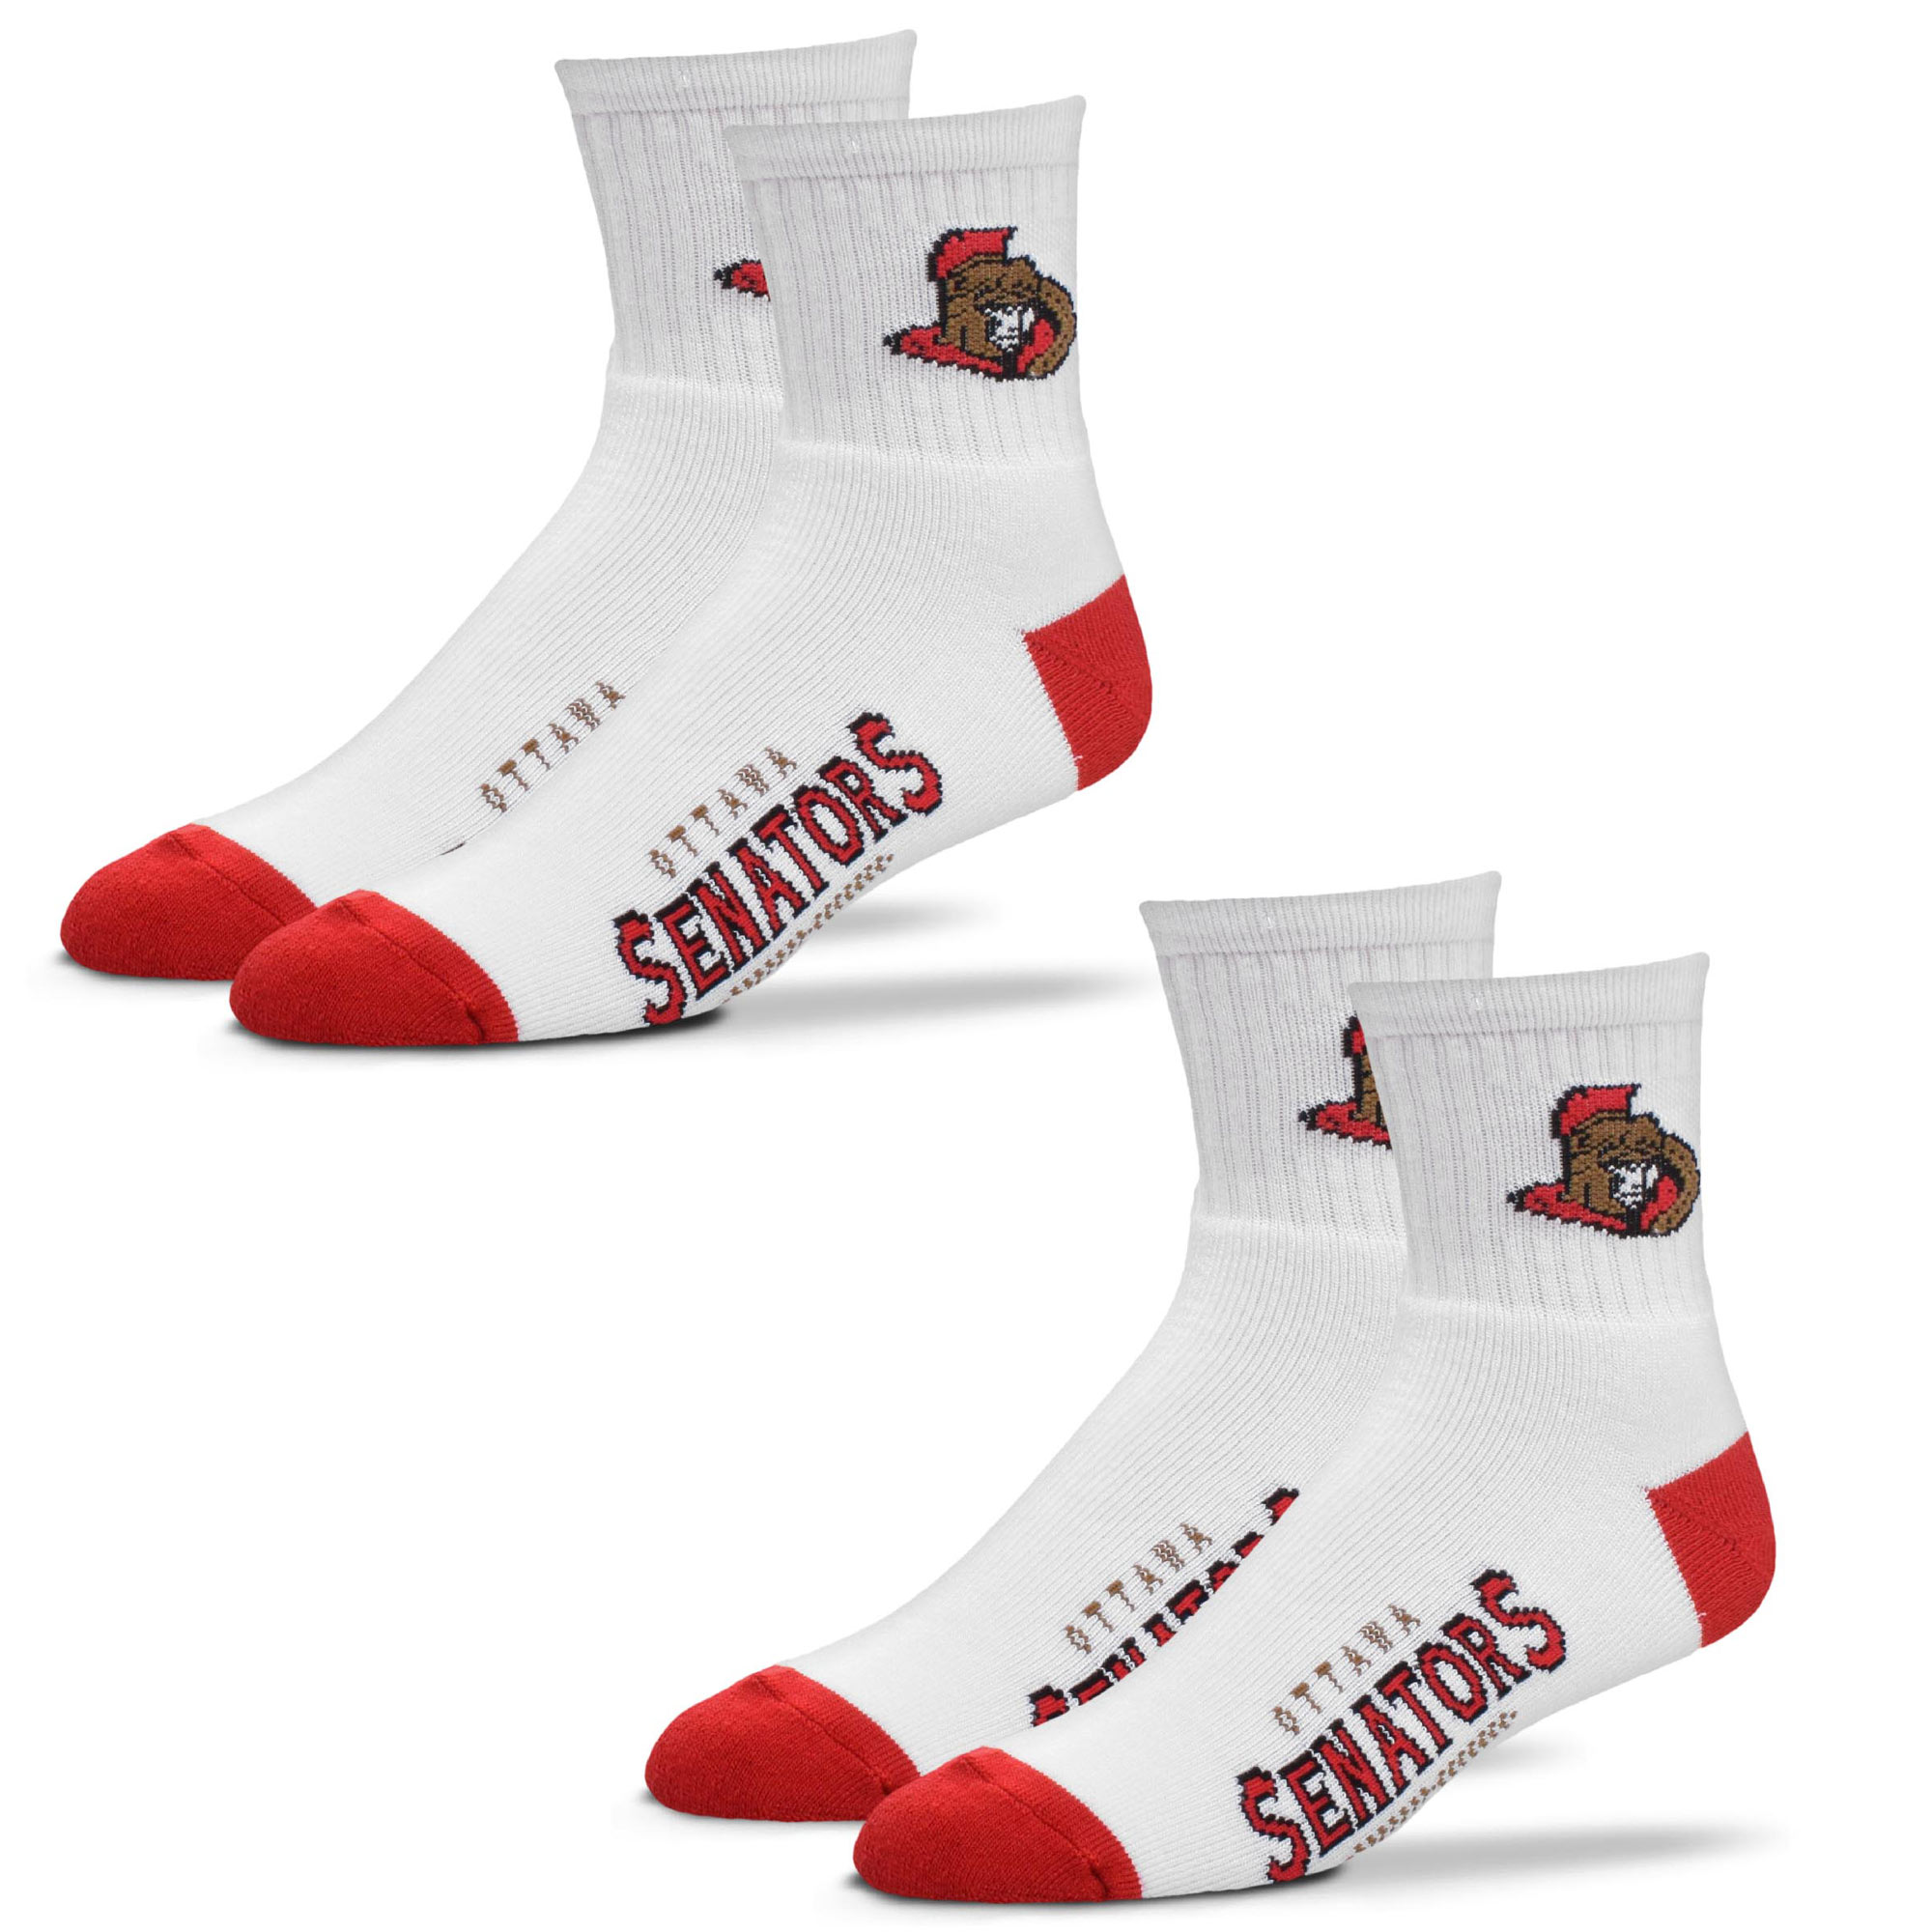 Ottawa Senators For Bare Feet Women's 2-Pack Quarter-Length Socks - M